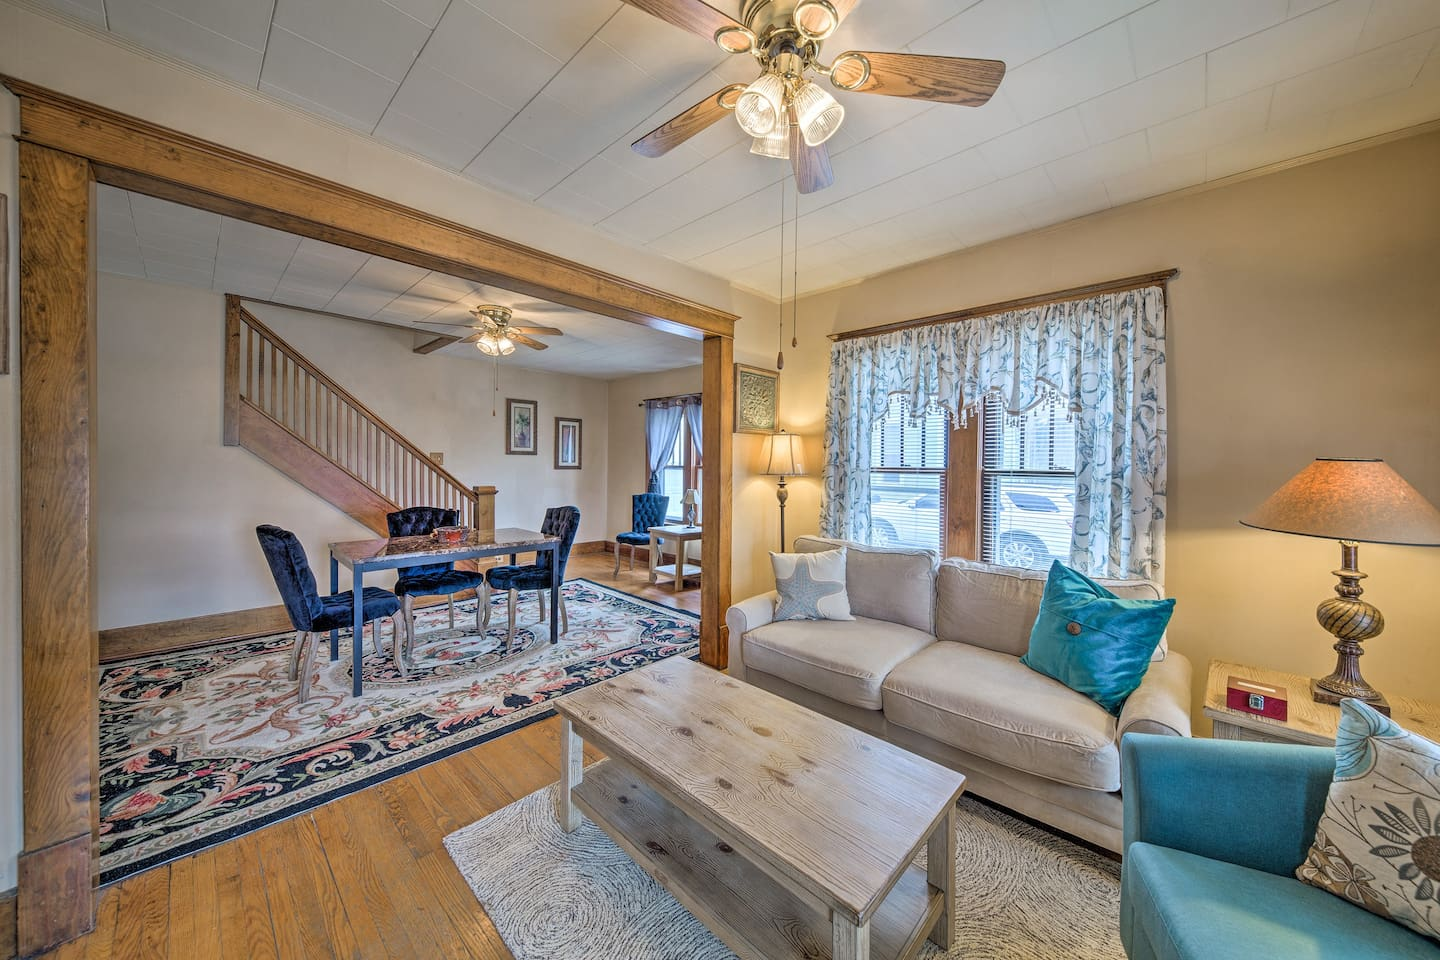 Clear the calendar for a trip to this vacation rental house in Urbana!